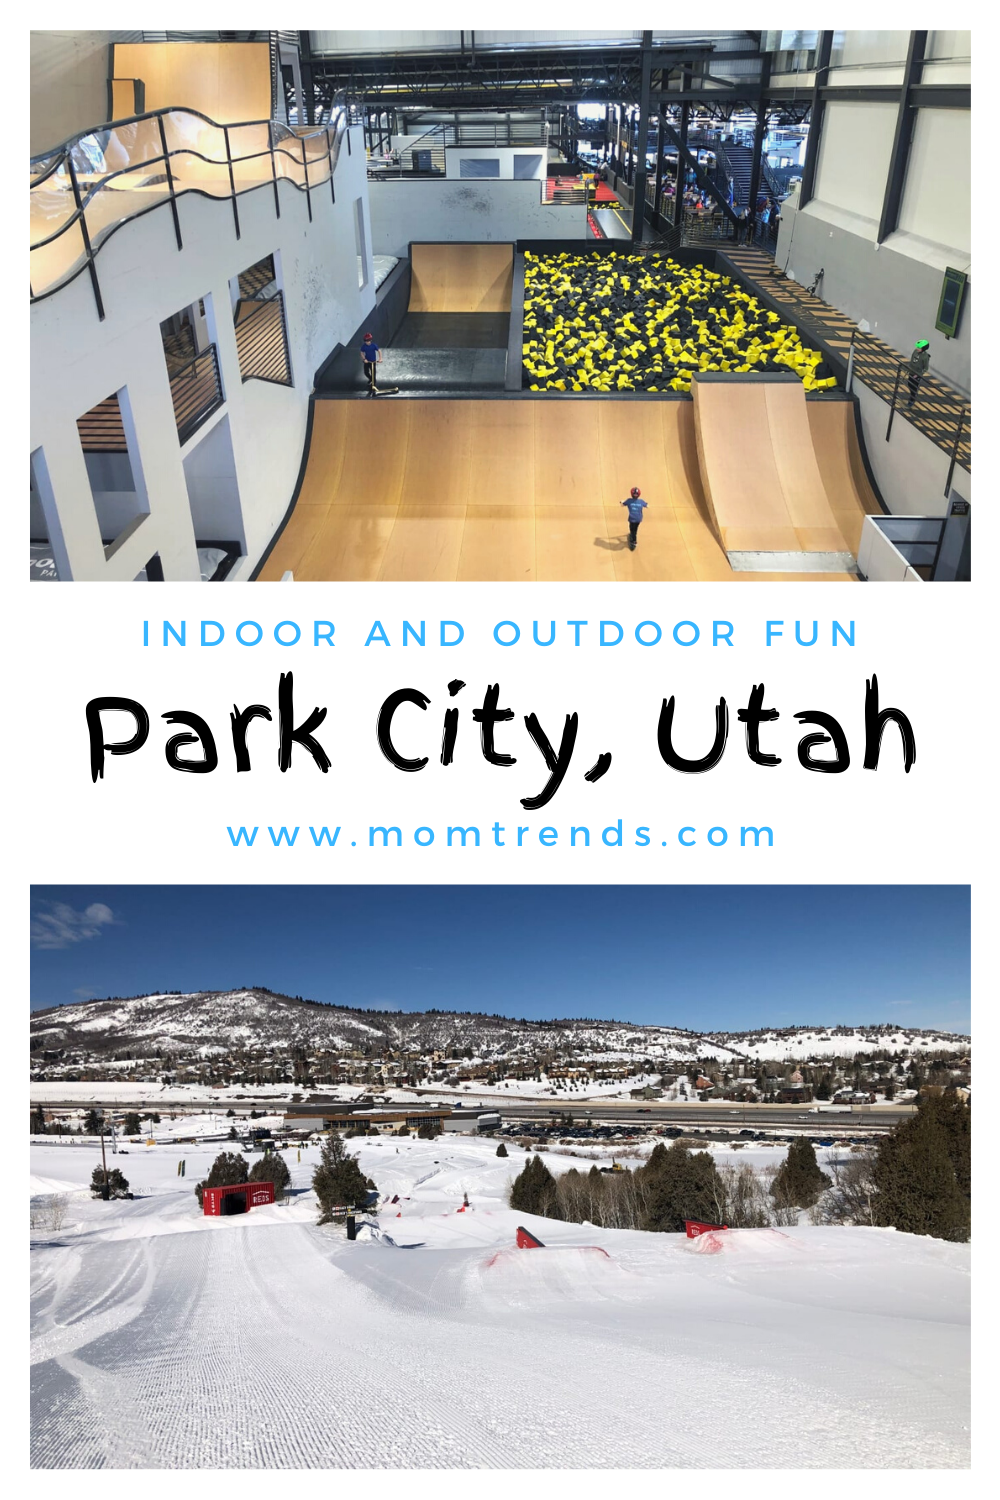 Woodward Offers Families A Cool New Way To Play In Park City In 2020 Park City Family Ski Trip Park City Utah